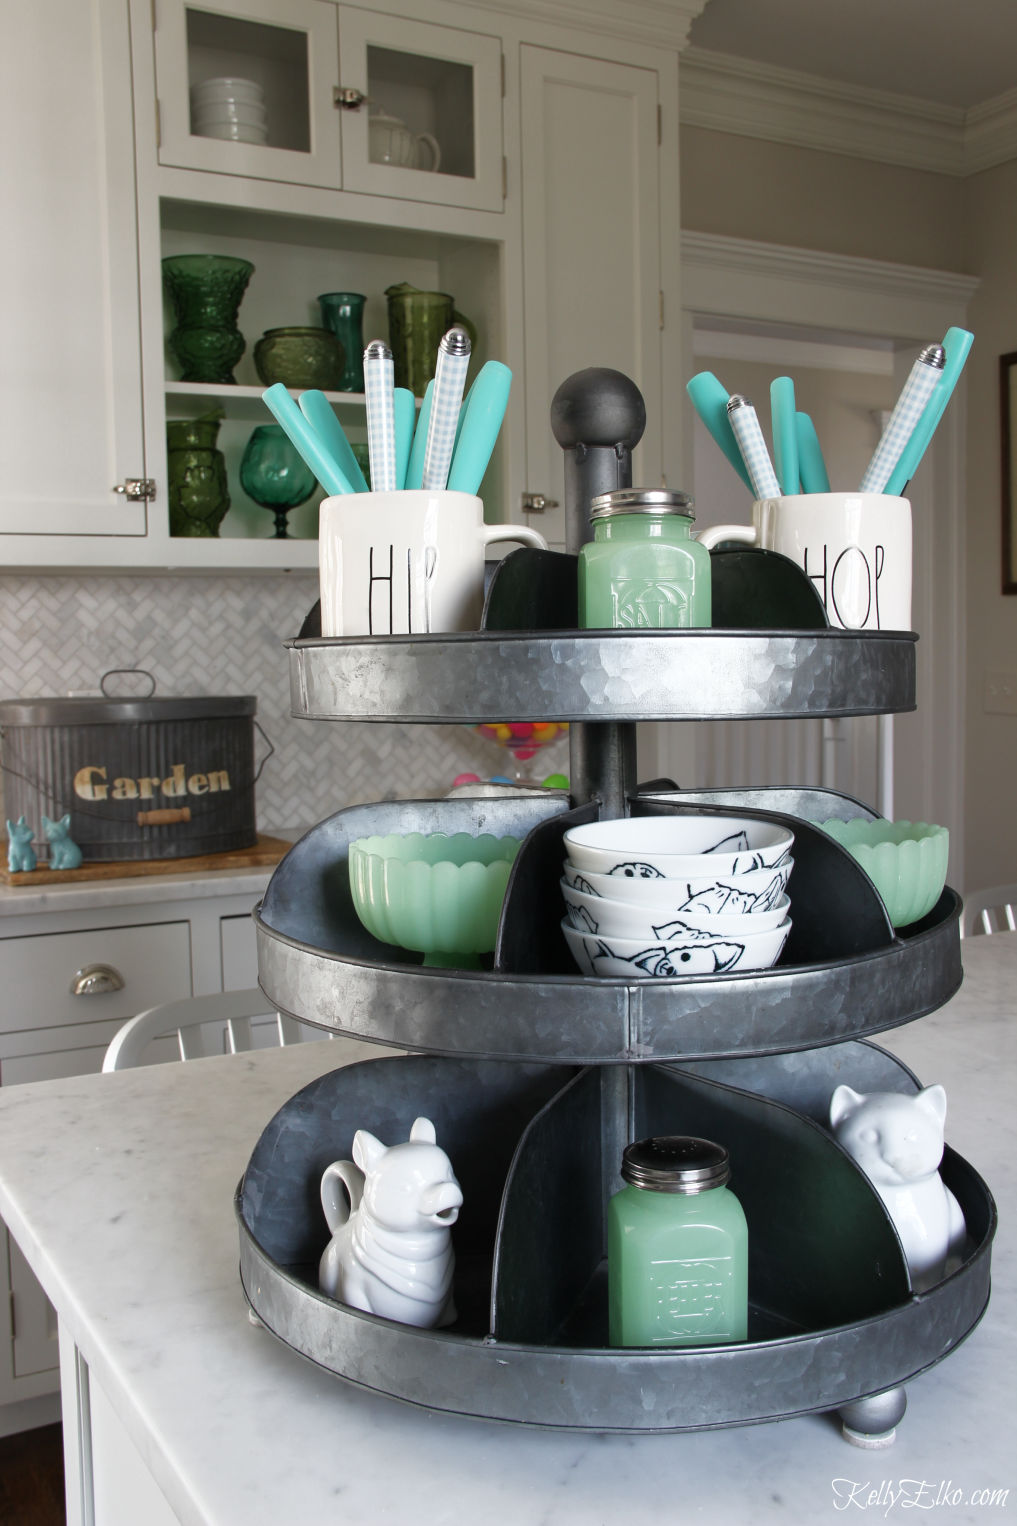 Love this galvanized tiered tray for kitchen display kellyelko.com #kitchen #kitchendecor #trays #tieredtray #springdecor #farmhousedecor